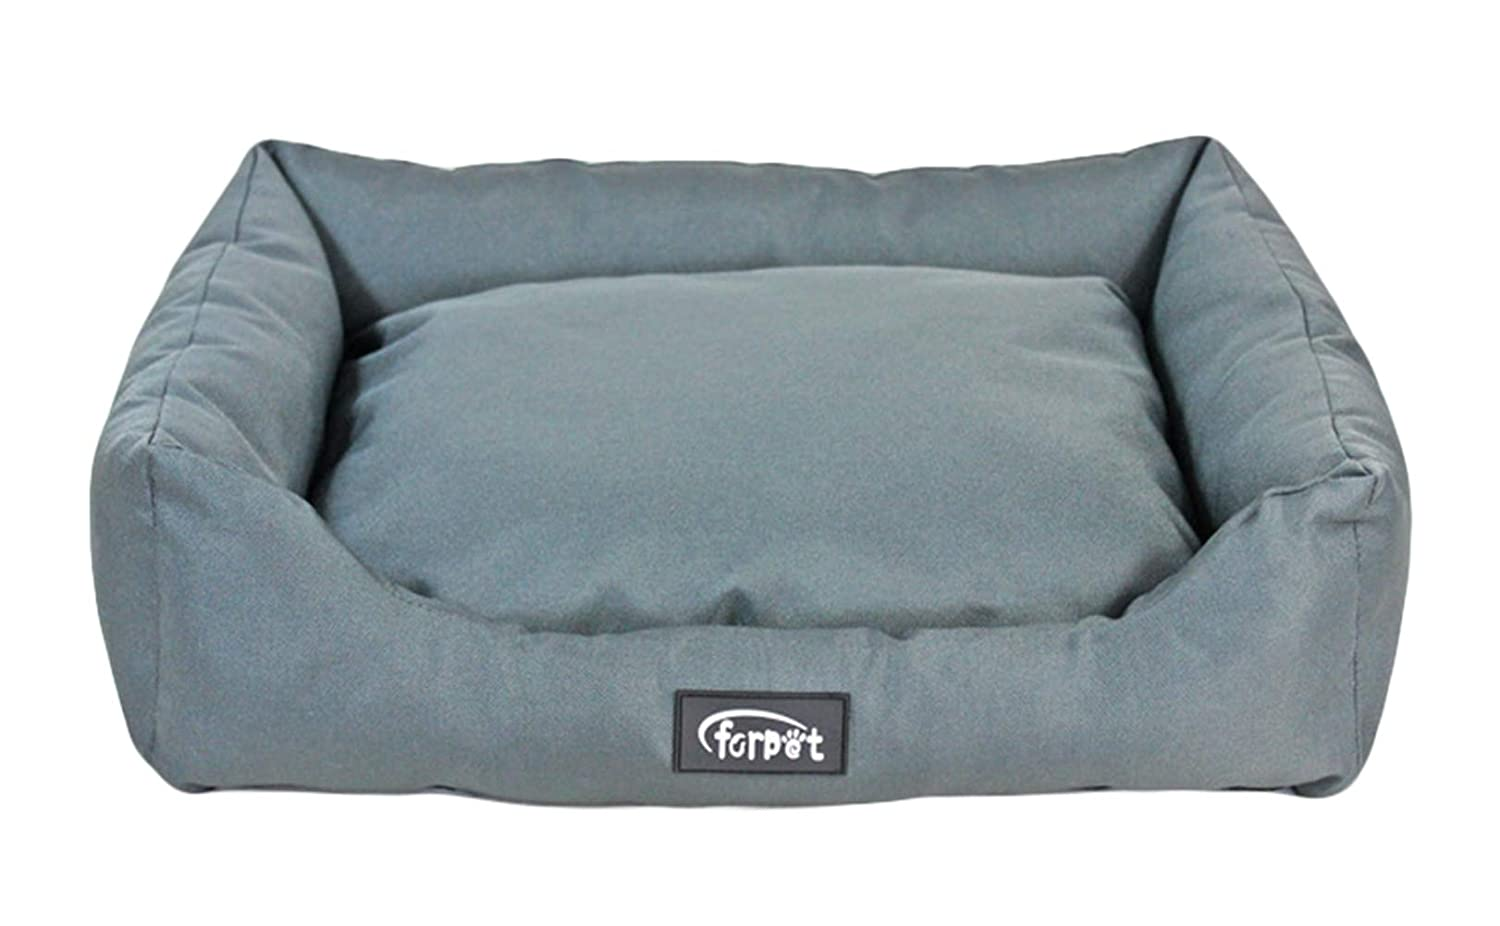 Light bluee 20''X16''X6'' Light bluee 20''X16''X6'' ONCEFIRST Dog Bed Cat Pet Bed Small Medium Pet Light bluee 20''X16''X6''